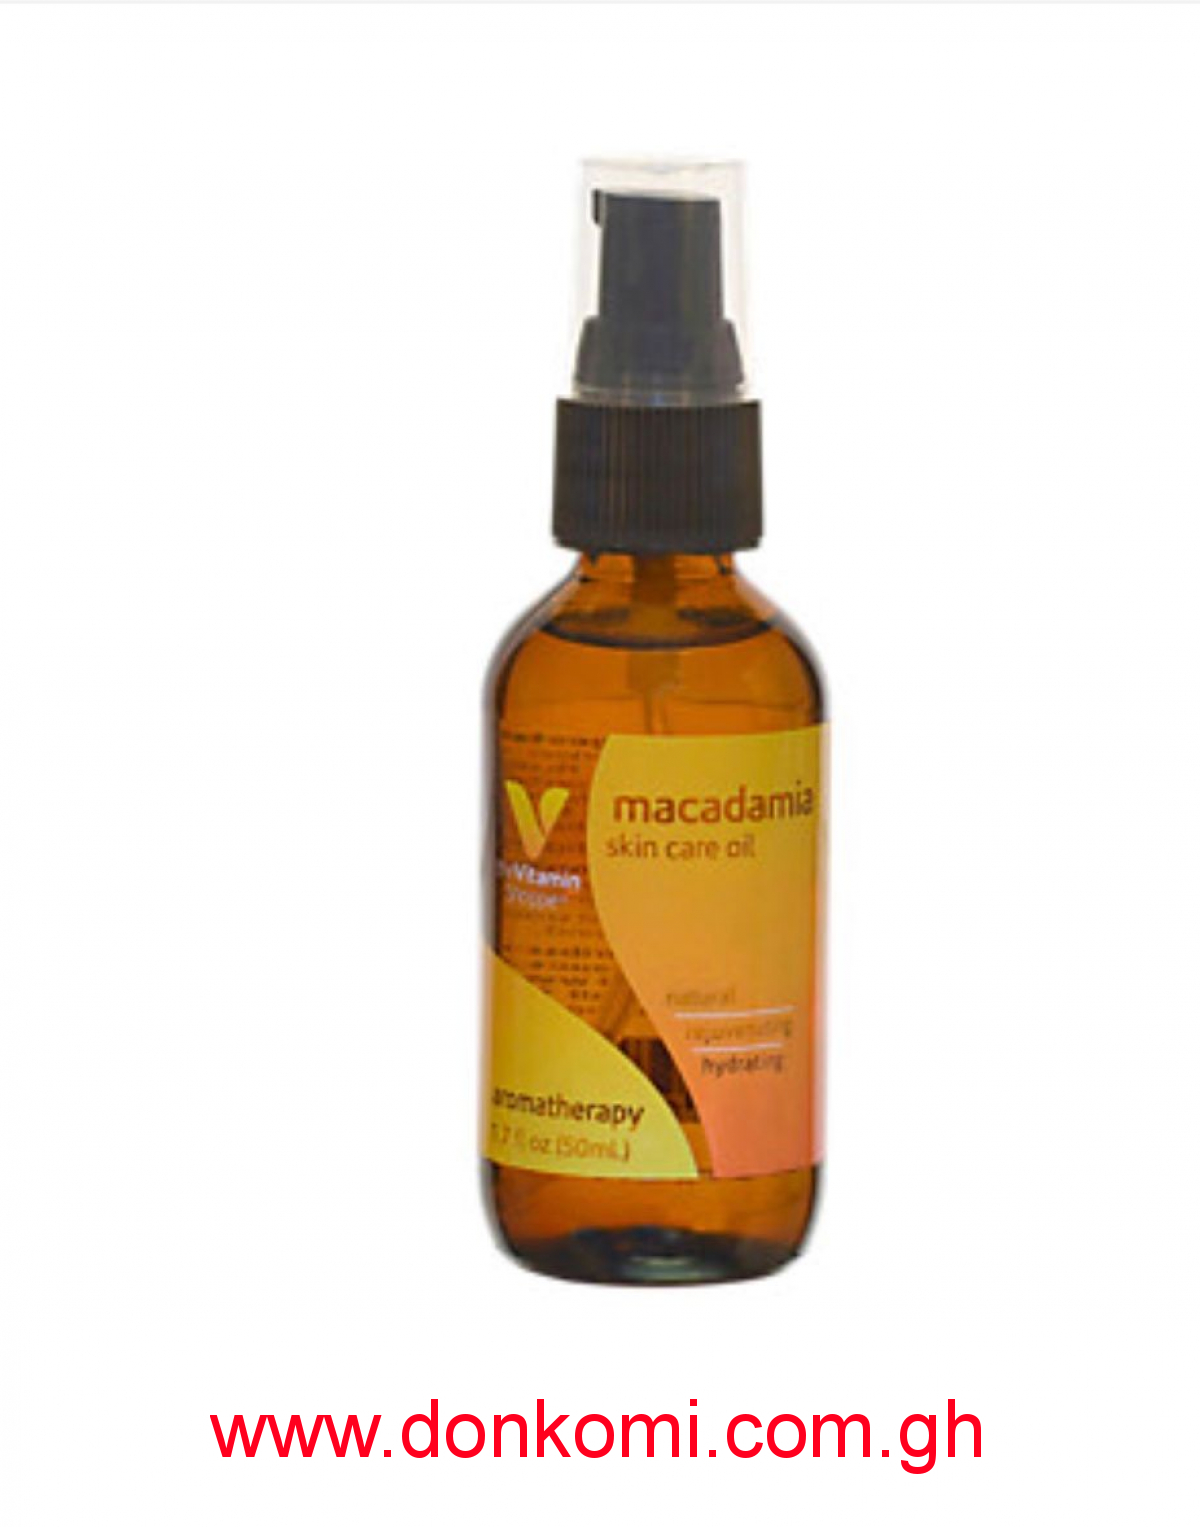 MACADAMIA SKIN CARE OIL